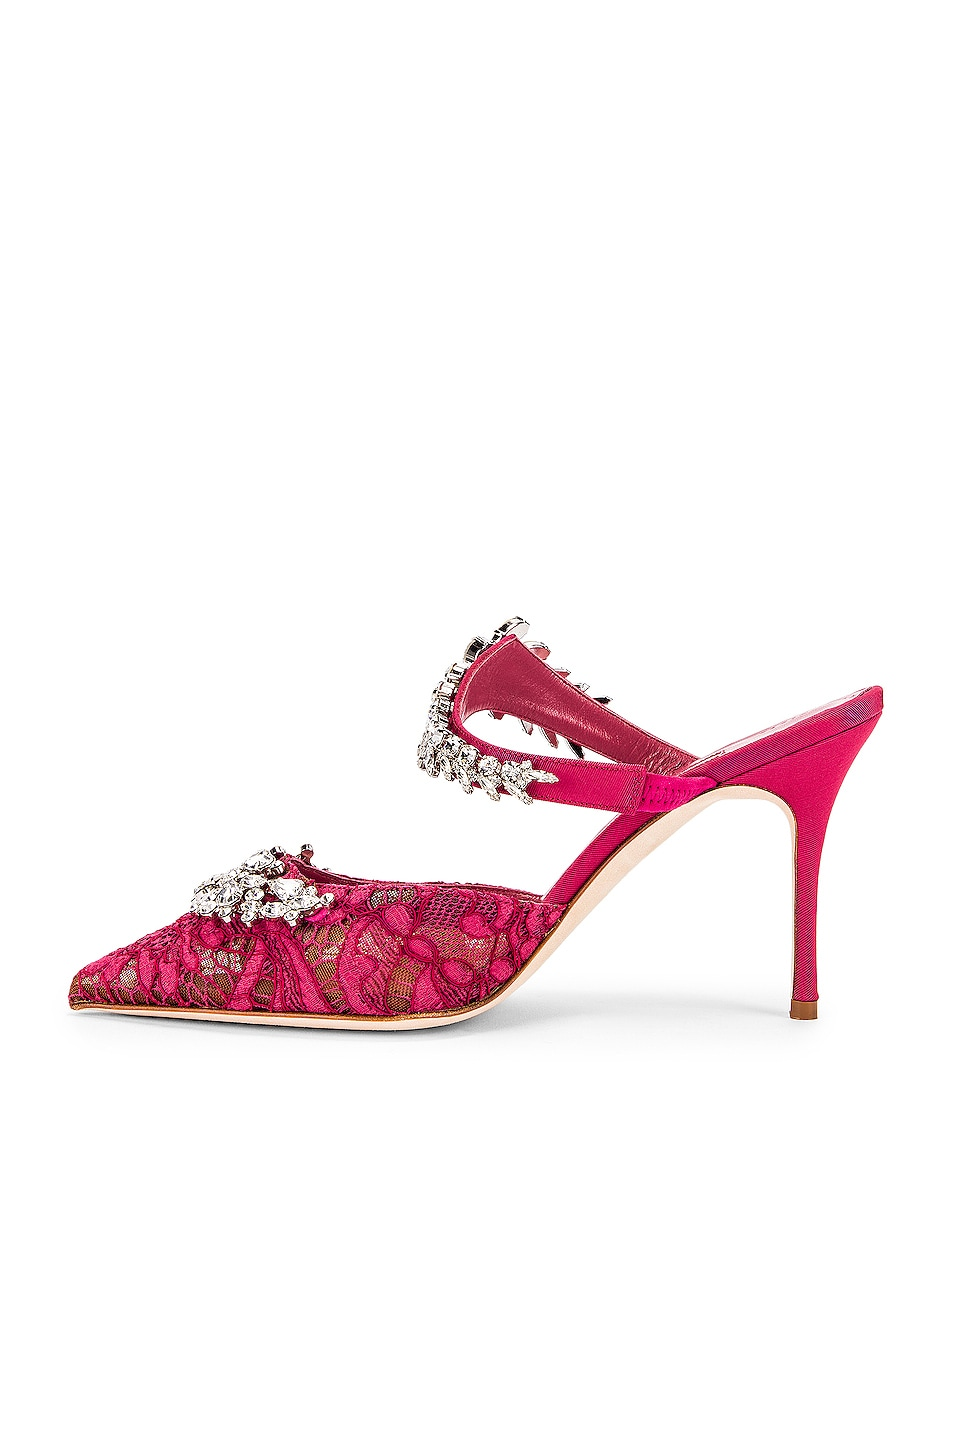 Image 5 of Manolo Blahnik Lurum 90 Mule in Raspberry